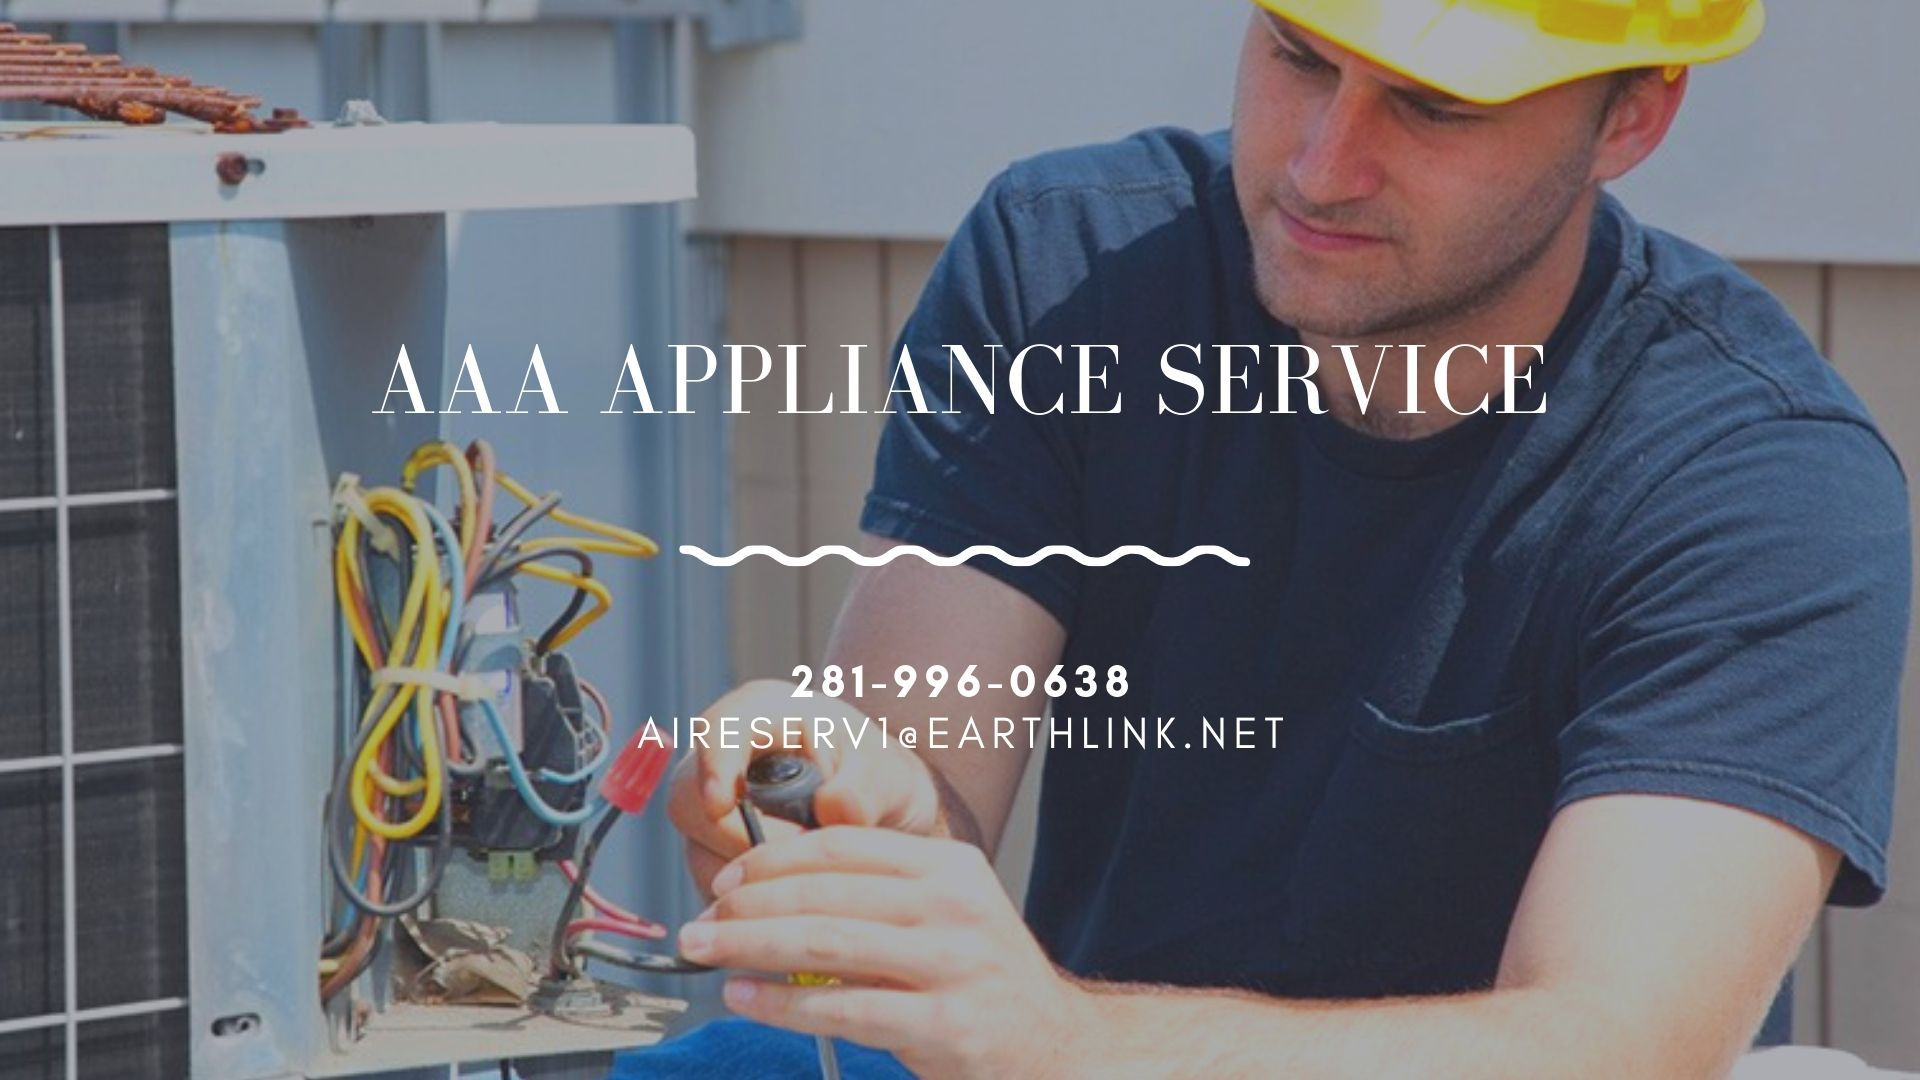 Look at this great offer from AAA Ability Appliance